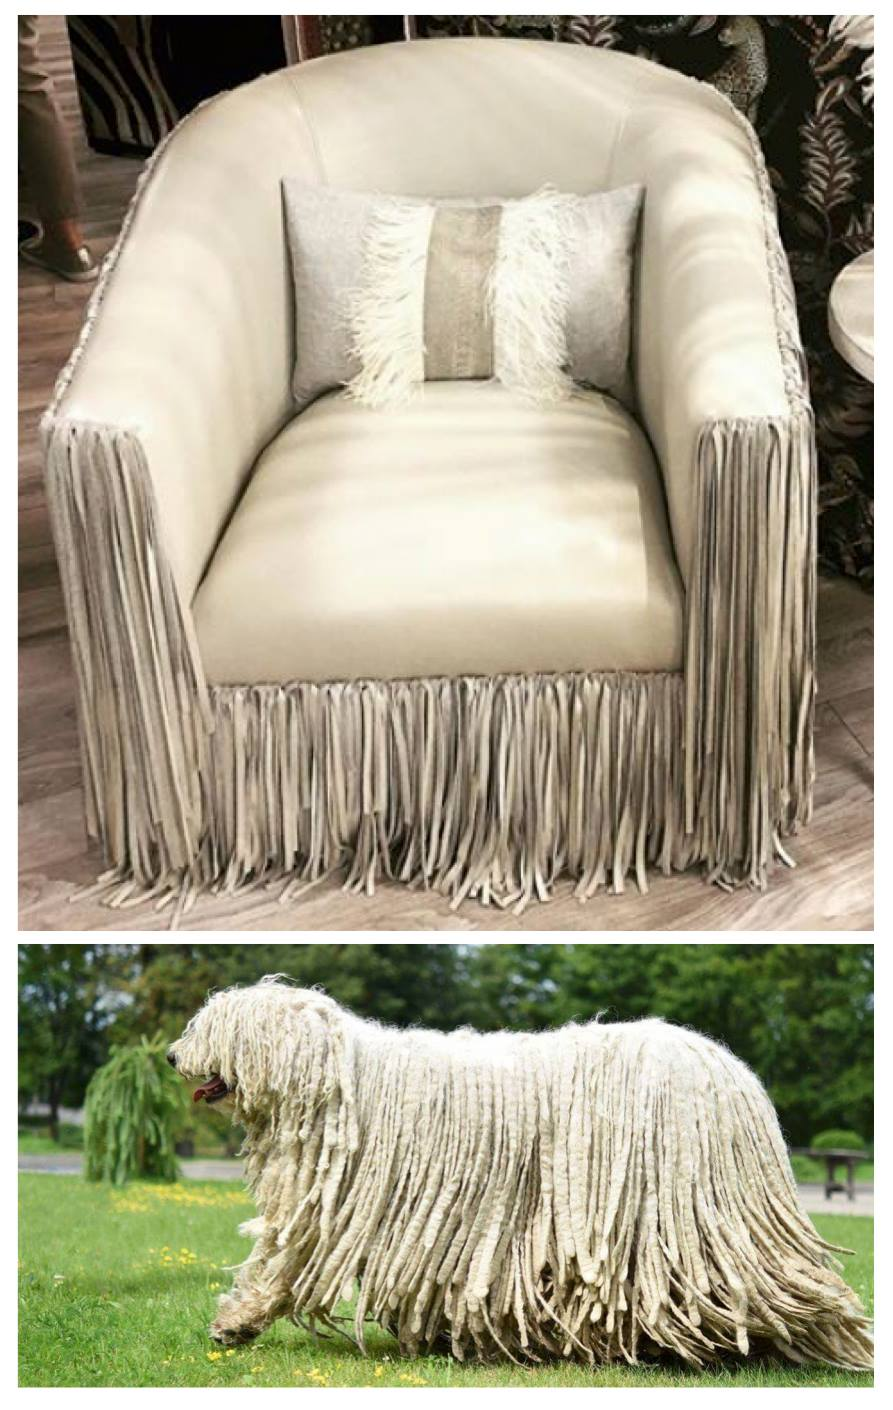 A swivel chair at the NY Now market trade show (2018) and a Komondor breed dog...twins separated at birth?